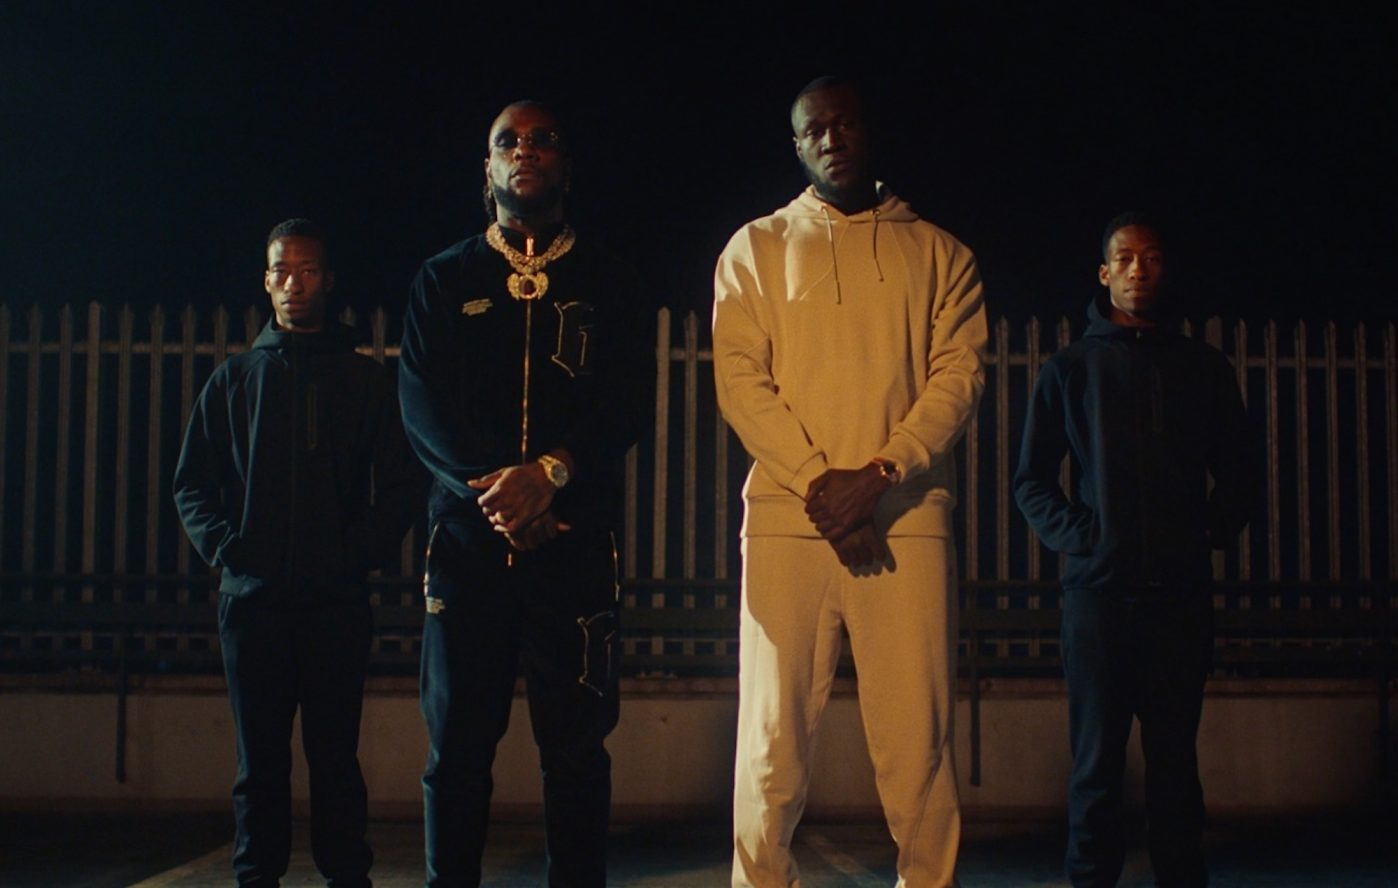 Burna Boy's emotional video for Real Life ft Stormzy